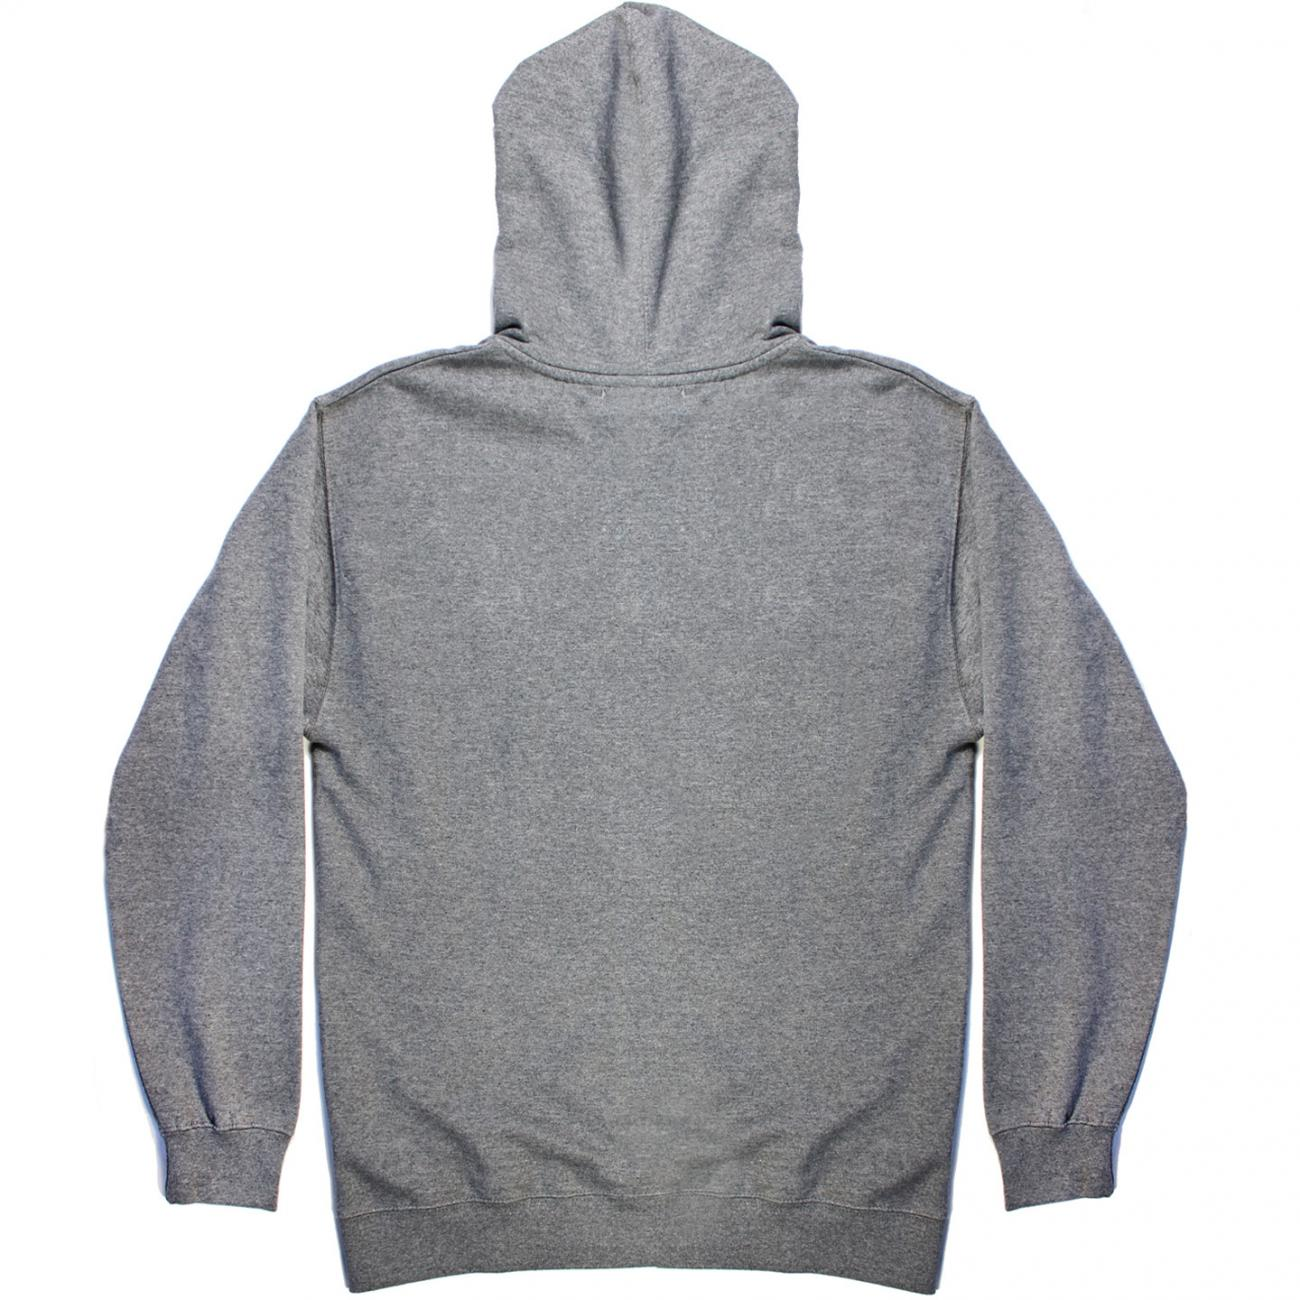 Gurney's Hoodie screened across chest back charcoal